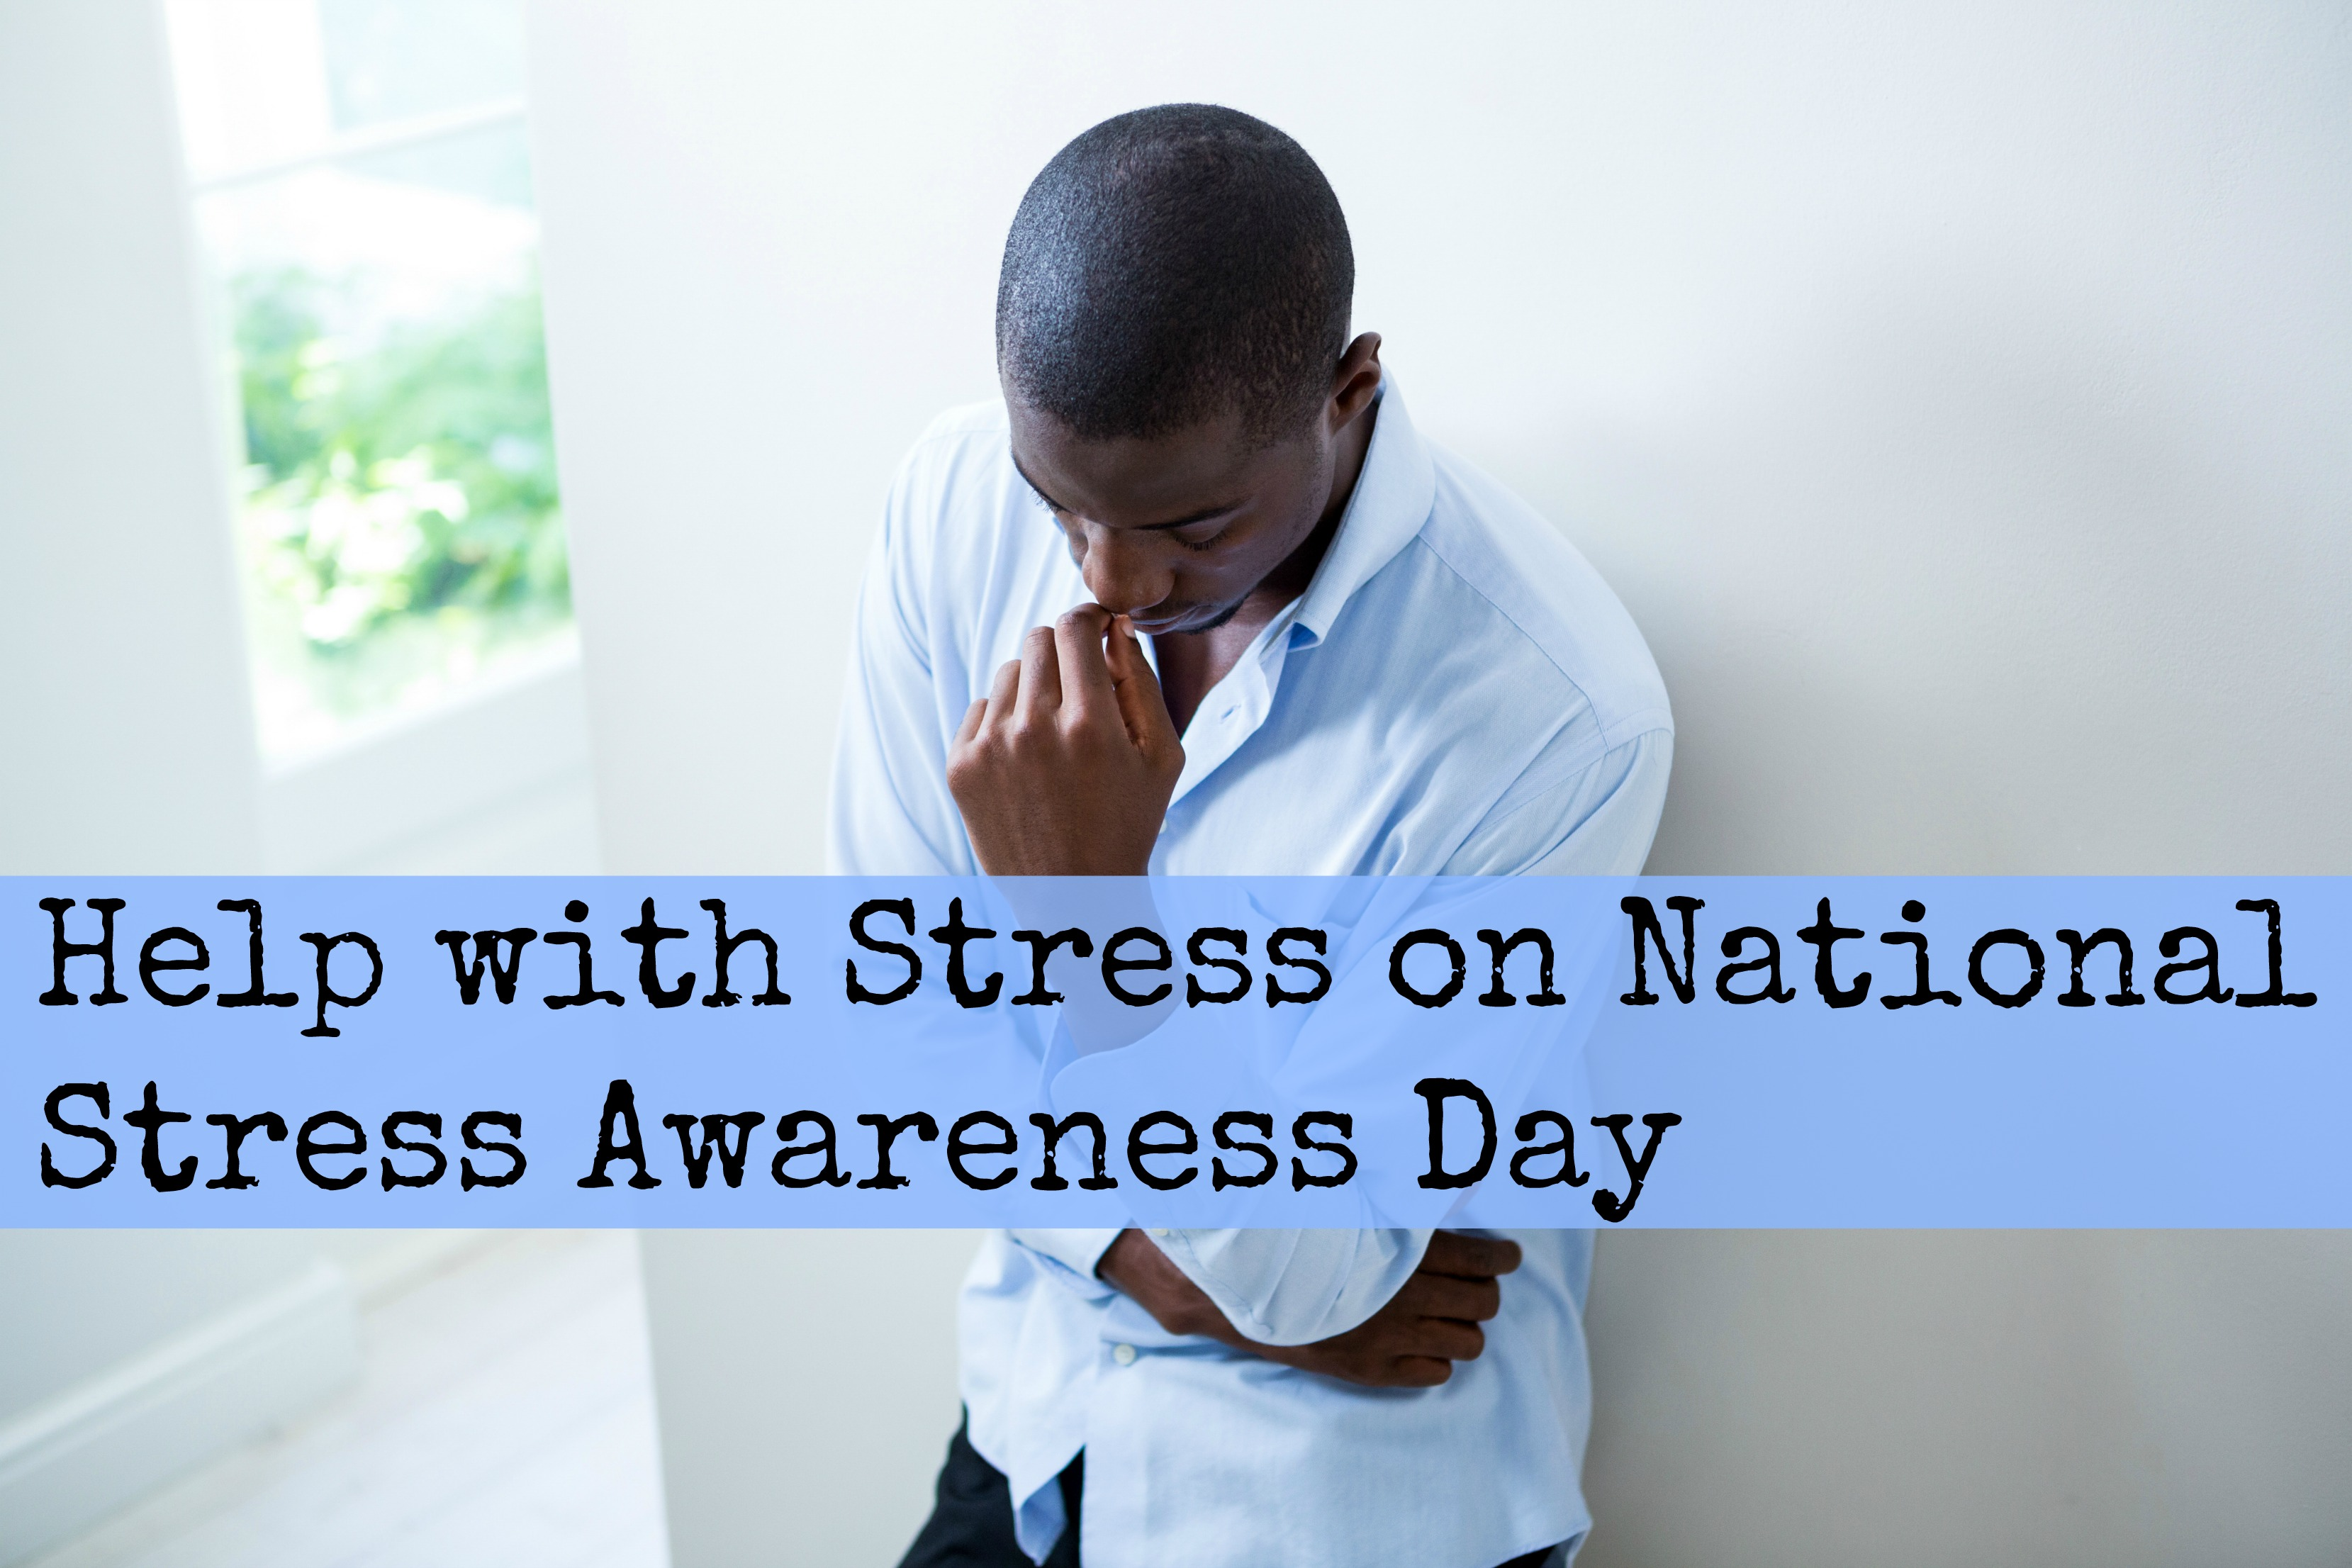 Help with Stress on National Stress Awareness Day